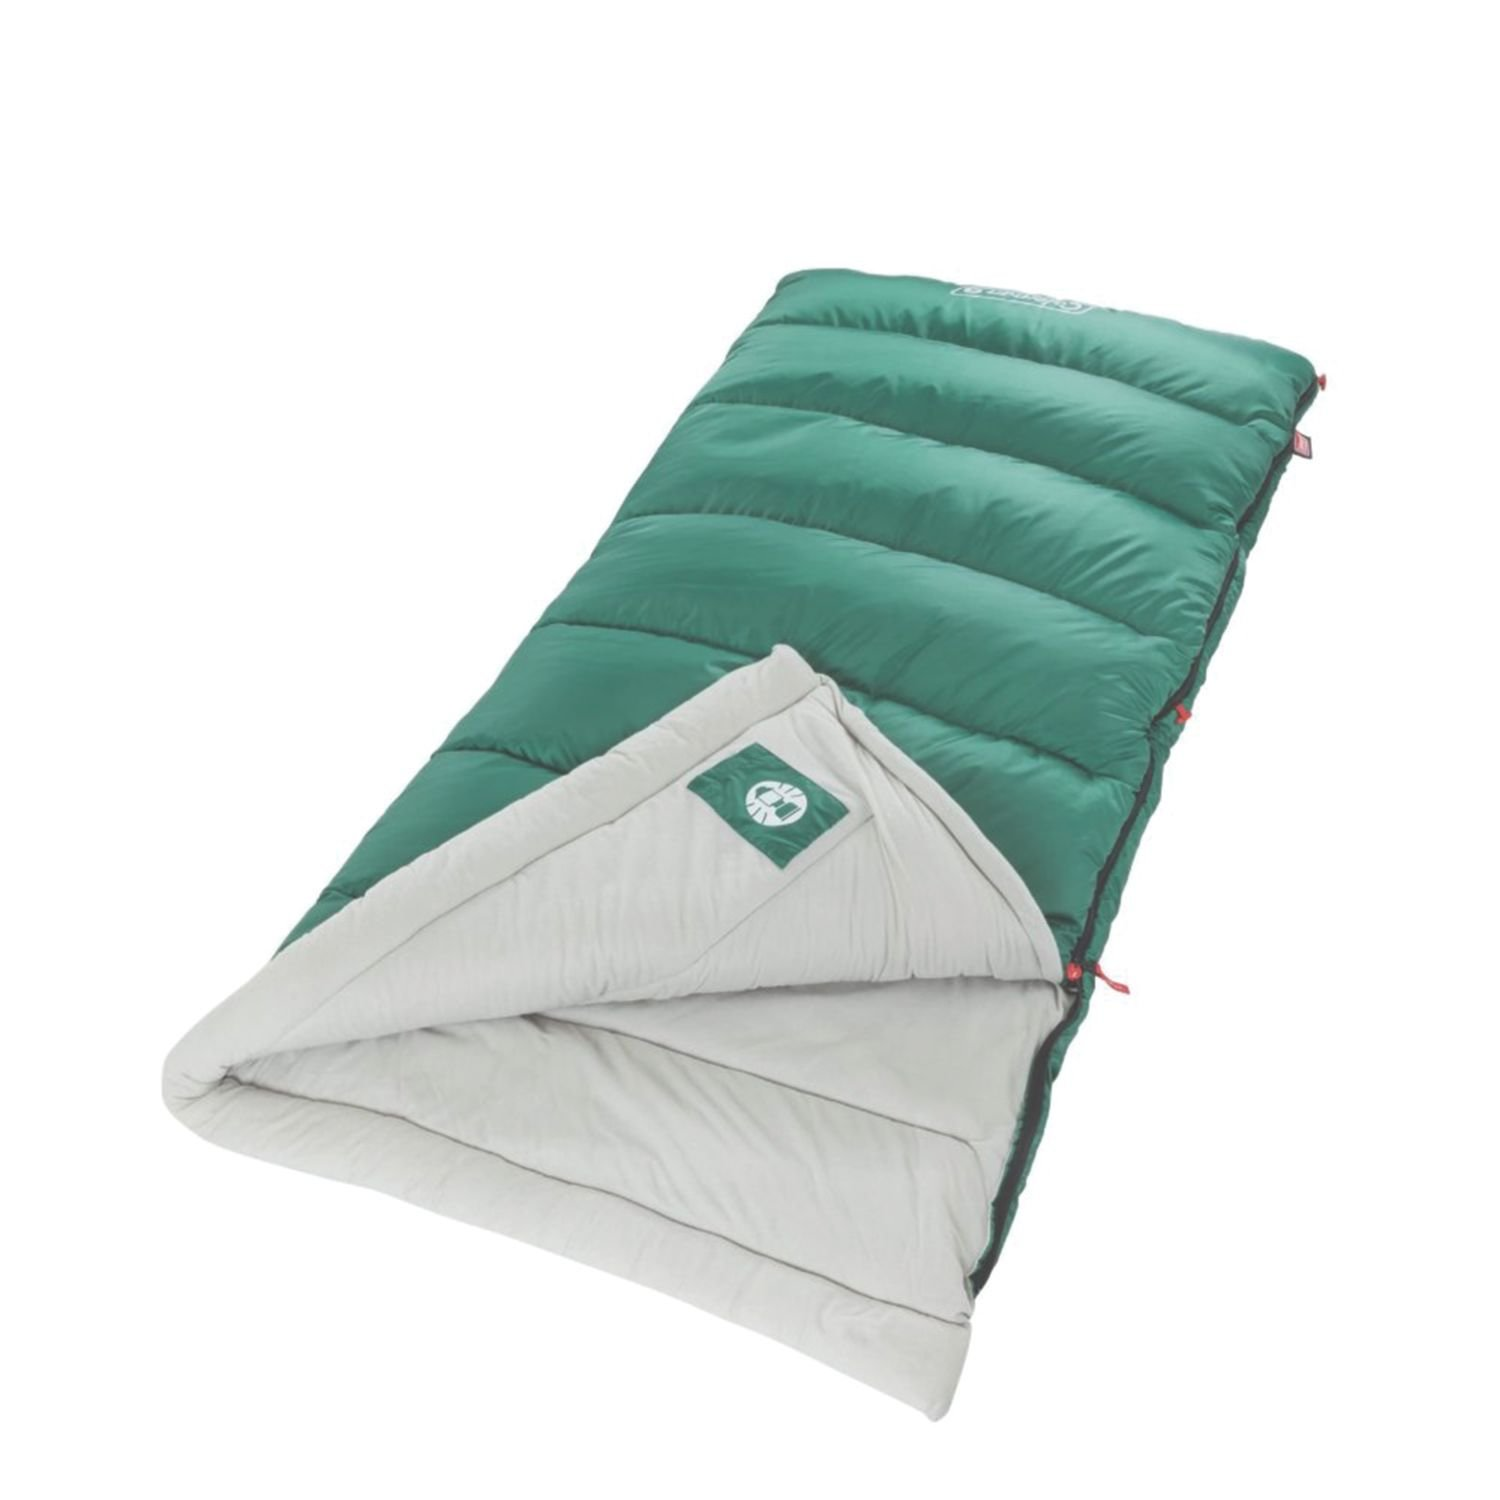 An image related to Coleman Autumn Glen 40 Degree Polyester Sleeping Bag